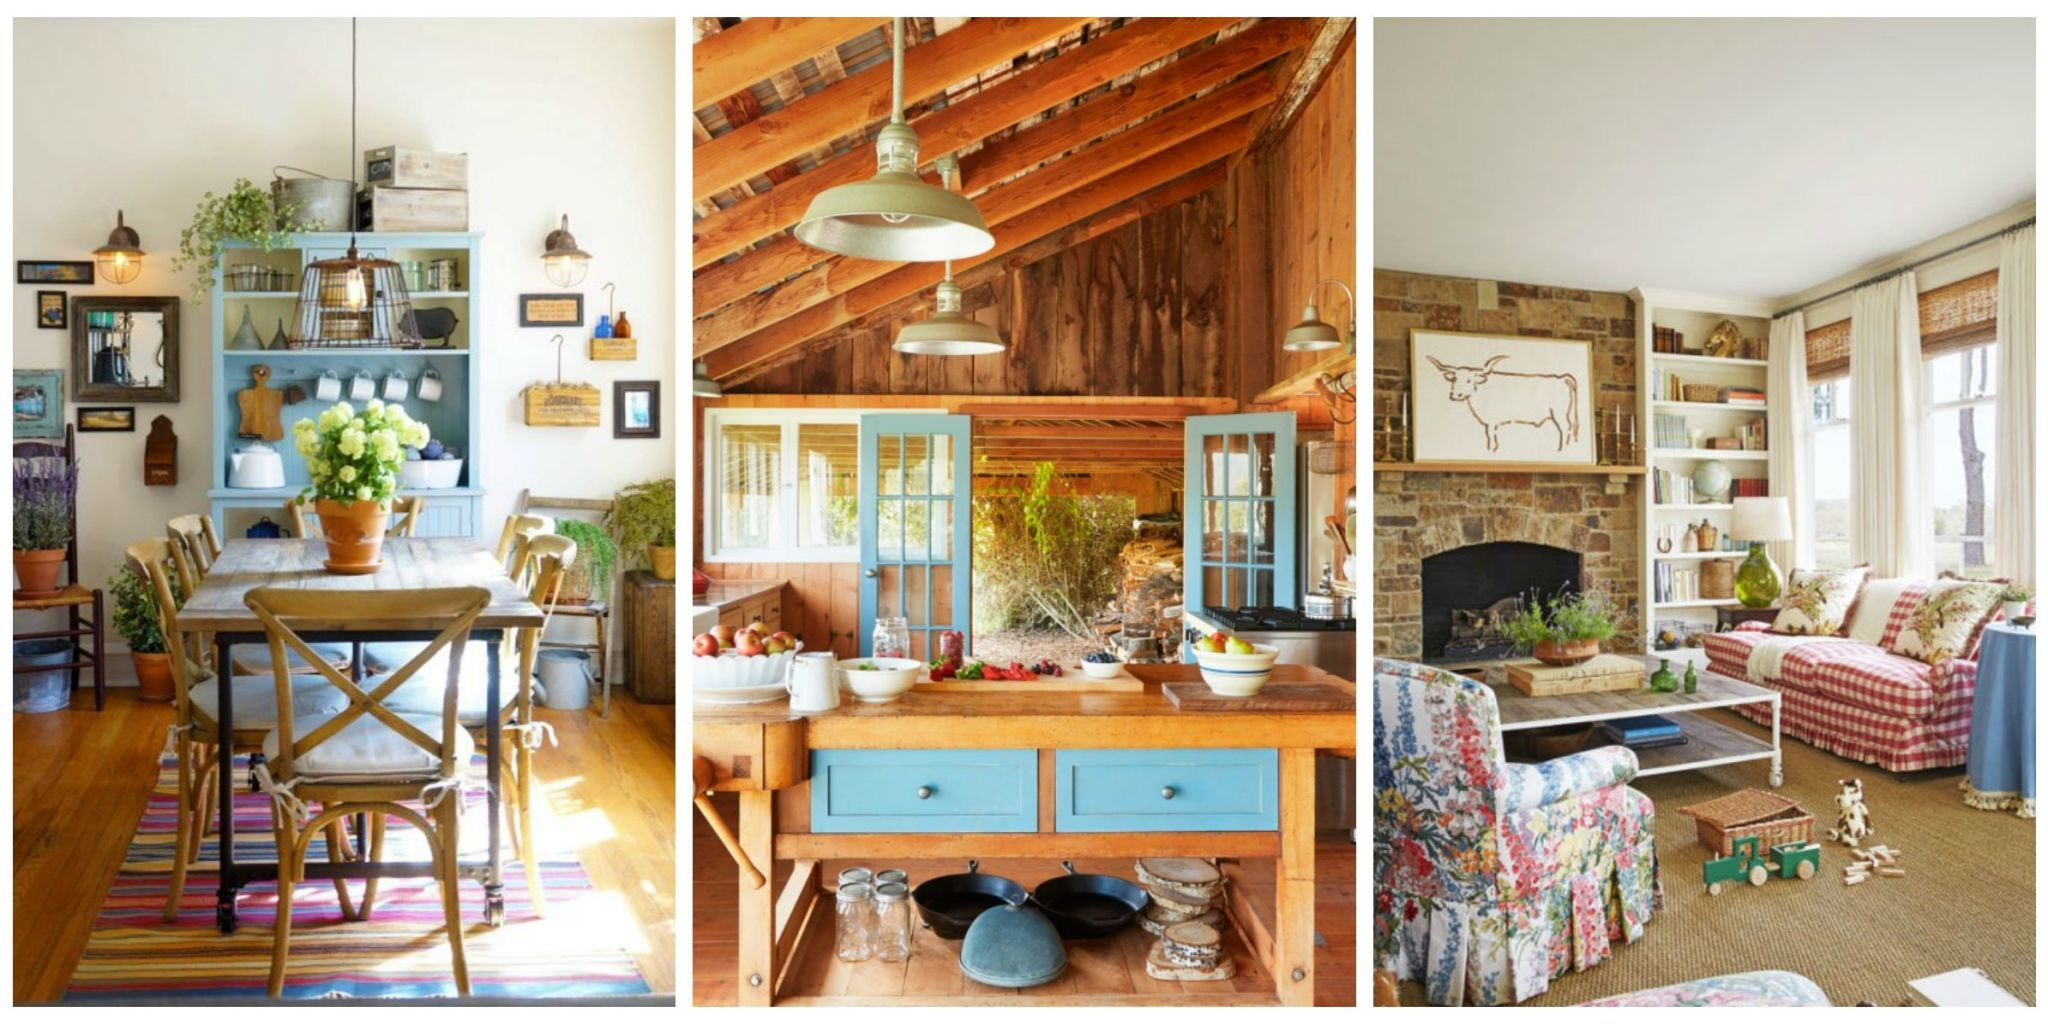 We Never Tire Of Beautiful Farmhouse Decoru2014from Bedrooms To Kitchens, Take  A Look At These Simple And Rustic Rooms. Want More? See Our Best Country ...